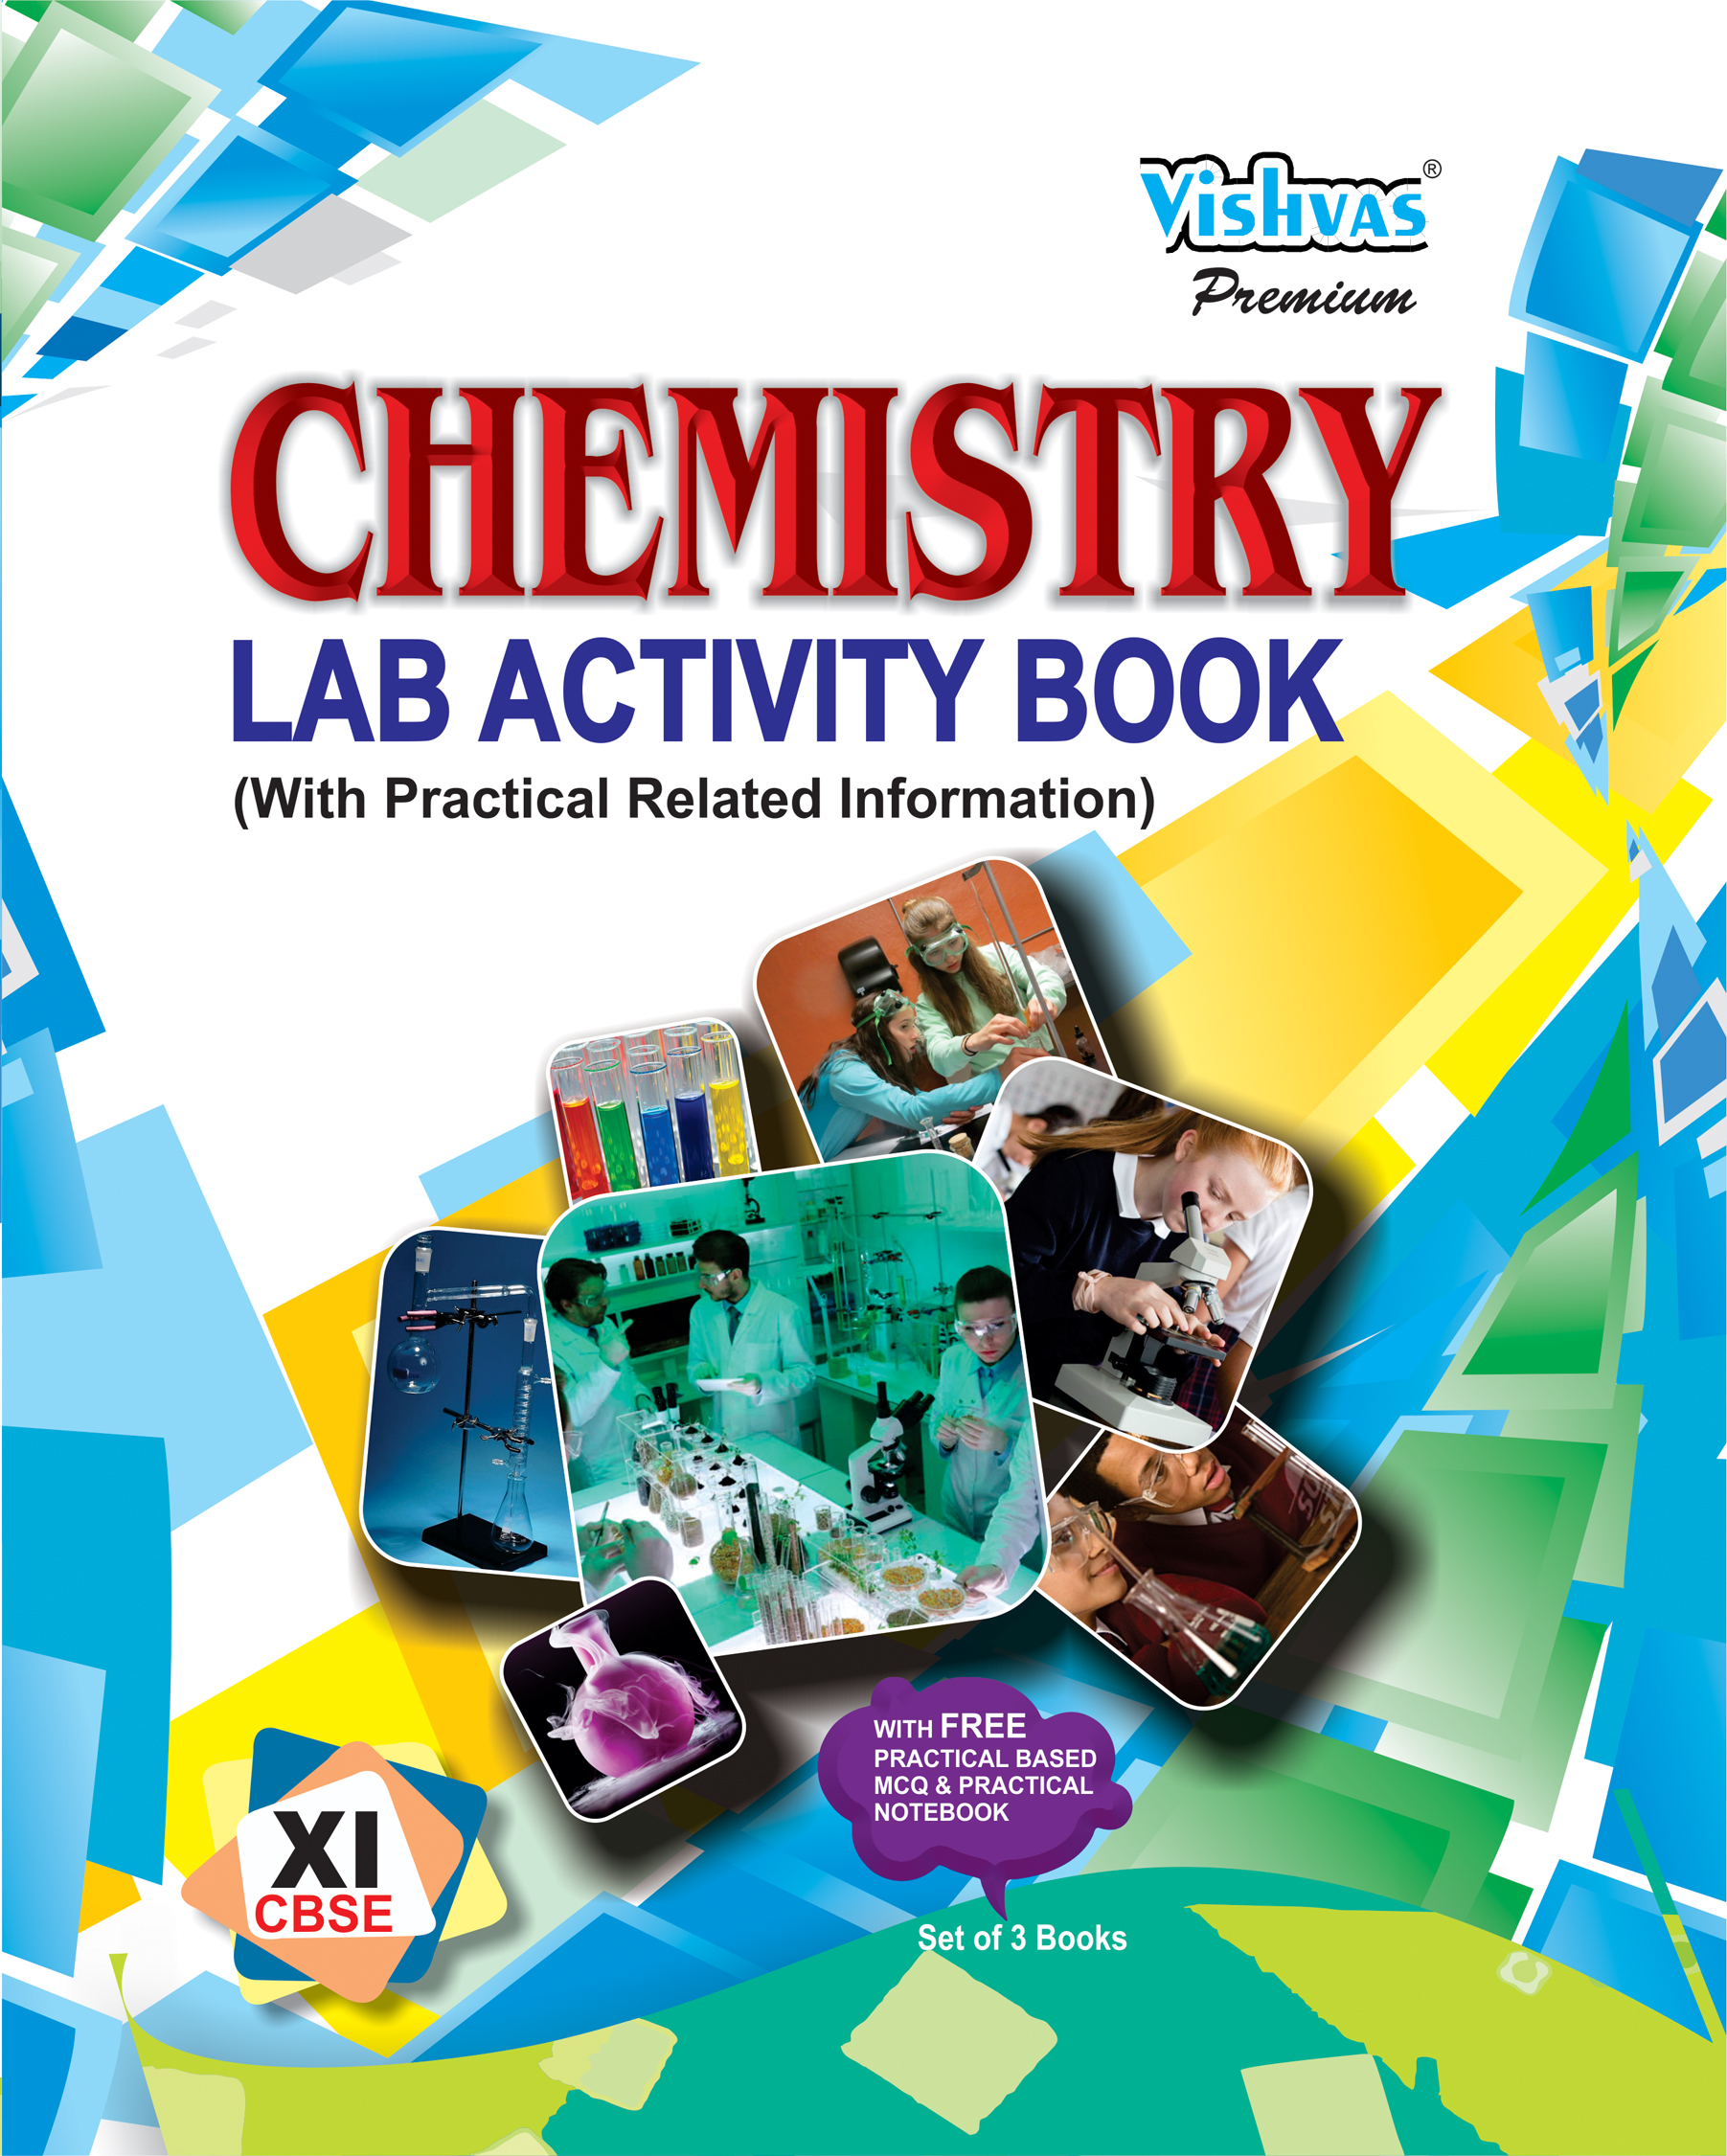 CBSE-2019-CHEMISTRY LAB ACTIVITY BOOK ,Class-XI,(With Practical Related  Information) With Free Practical Based MCQ & Practical Notebook)Set of 3  Books